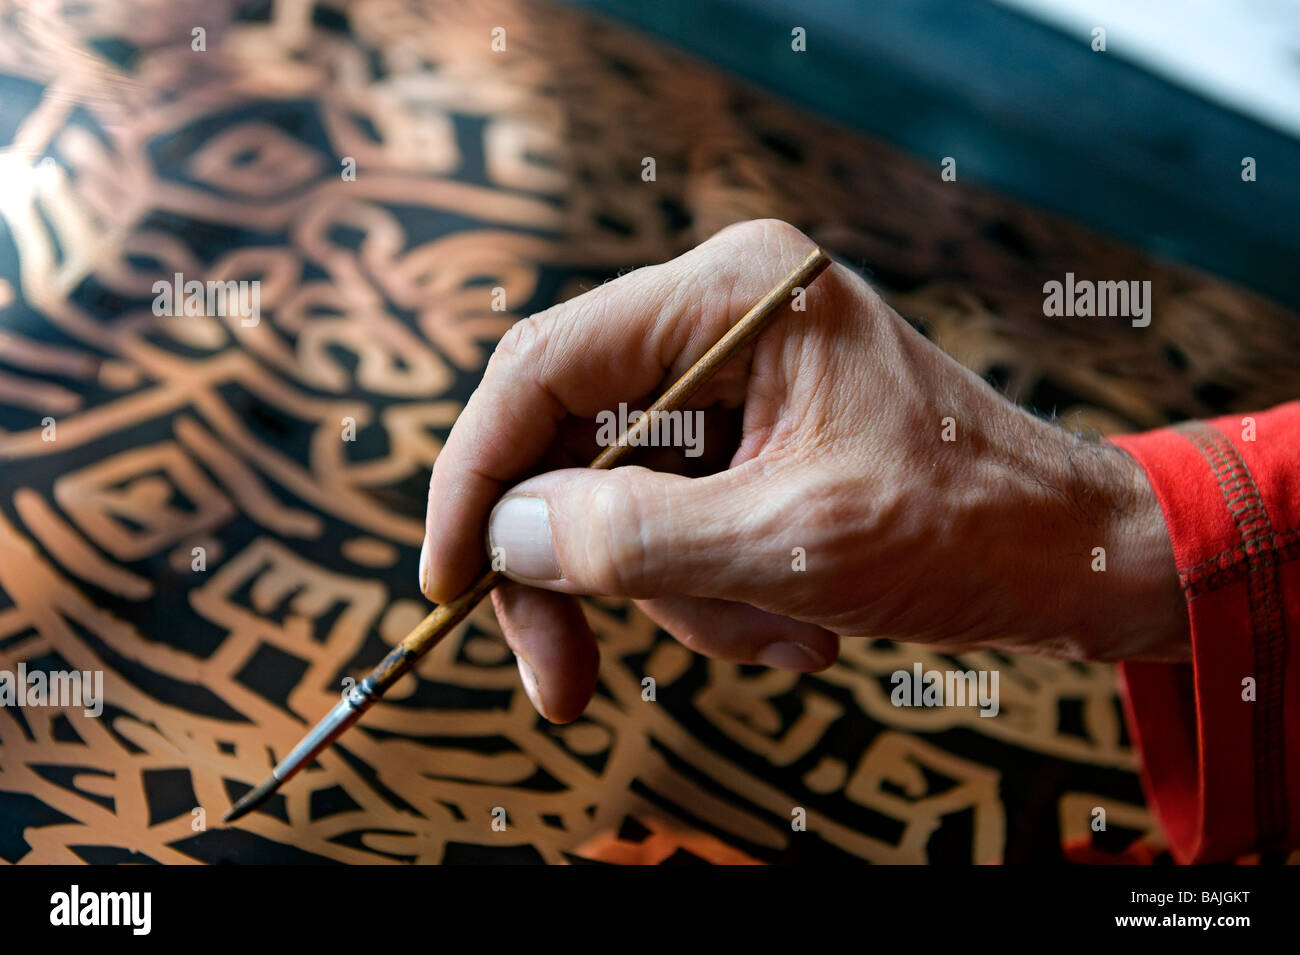 France, Yonne, Parly, the center of graphic art, artist Speedy Graphito in the lithography studio - Stock Image